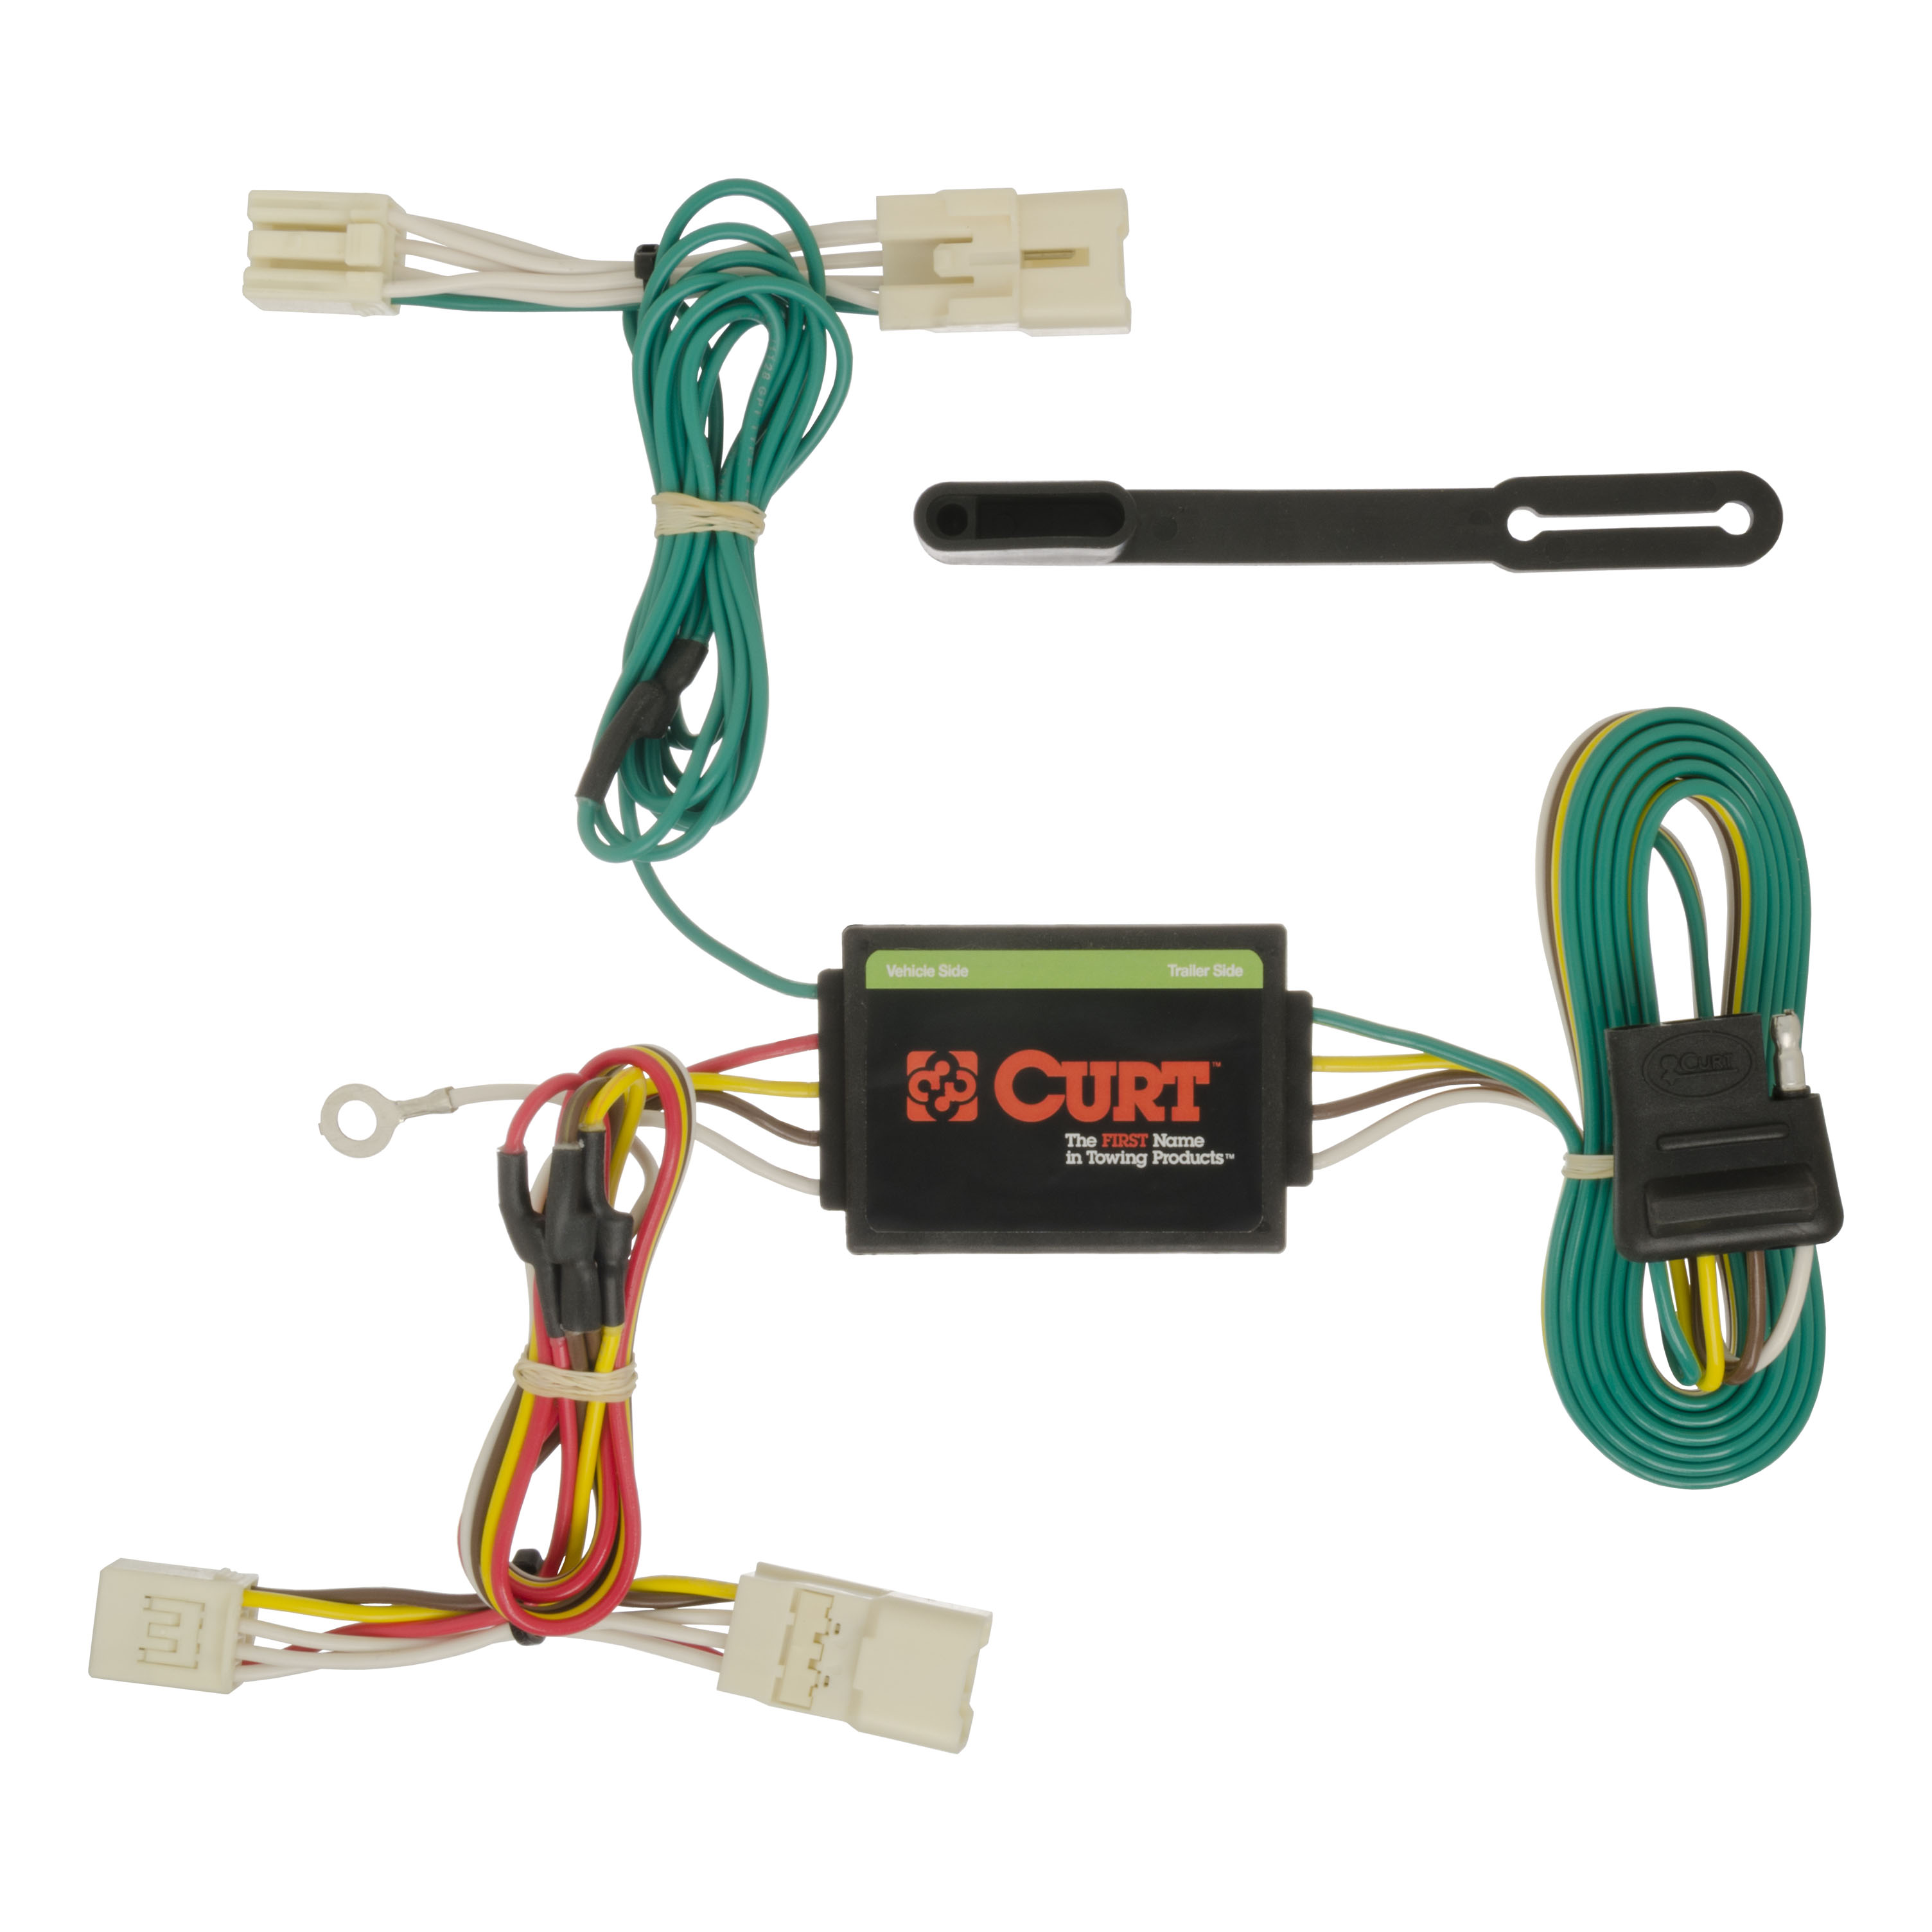 curt vehicle to trailer wiring harness 56186 for 2014 2016 kia forte rh ebay com 2013 kia sorento trailer wiring harness kia sportage trailer wiring harness